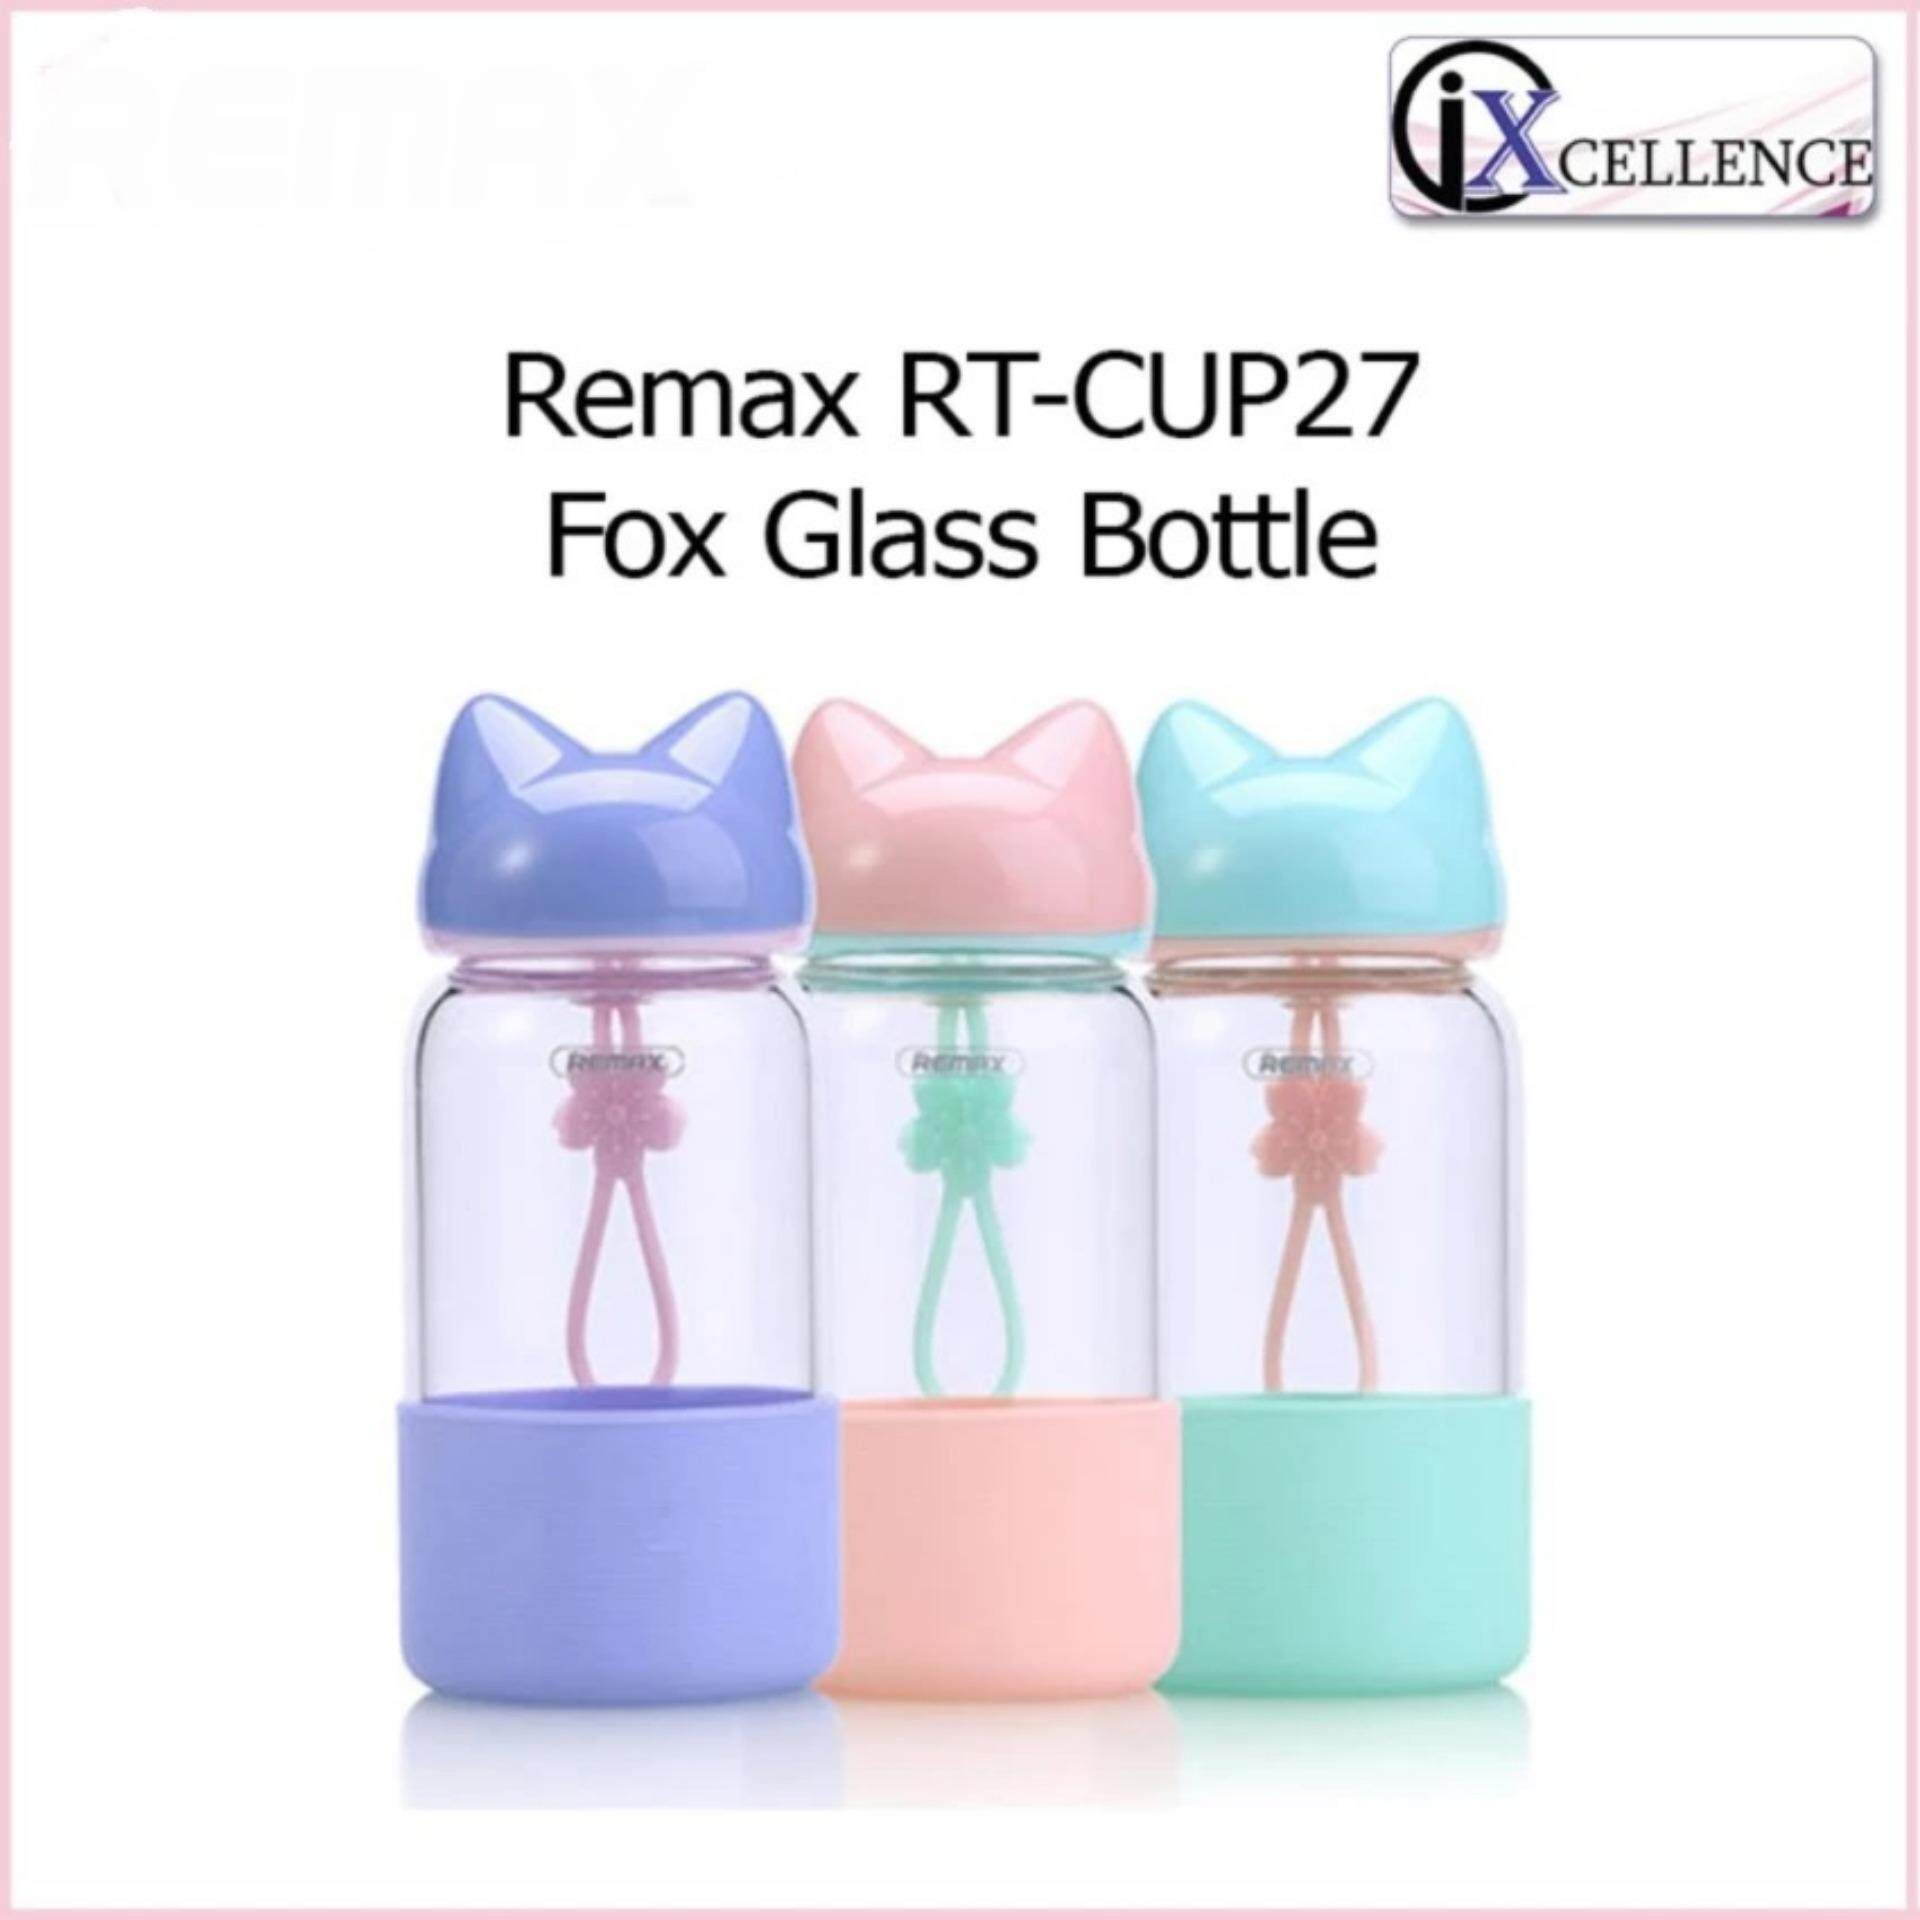 [IX] Remax RT-CUP27 Fox Glass Bottle